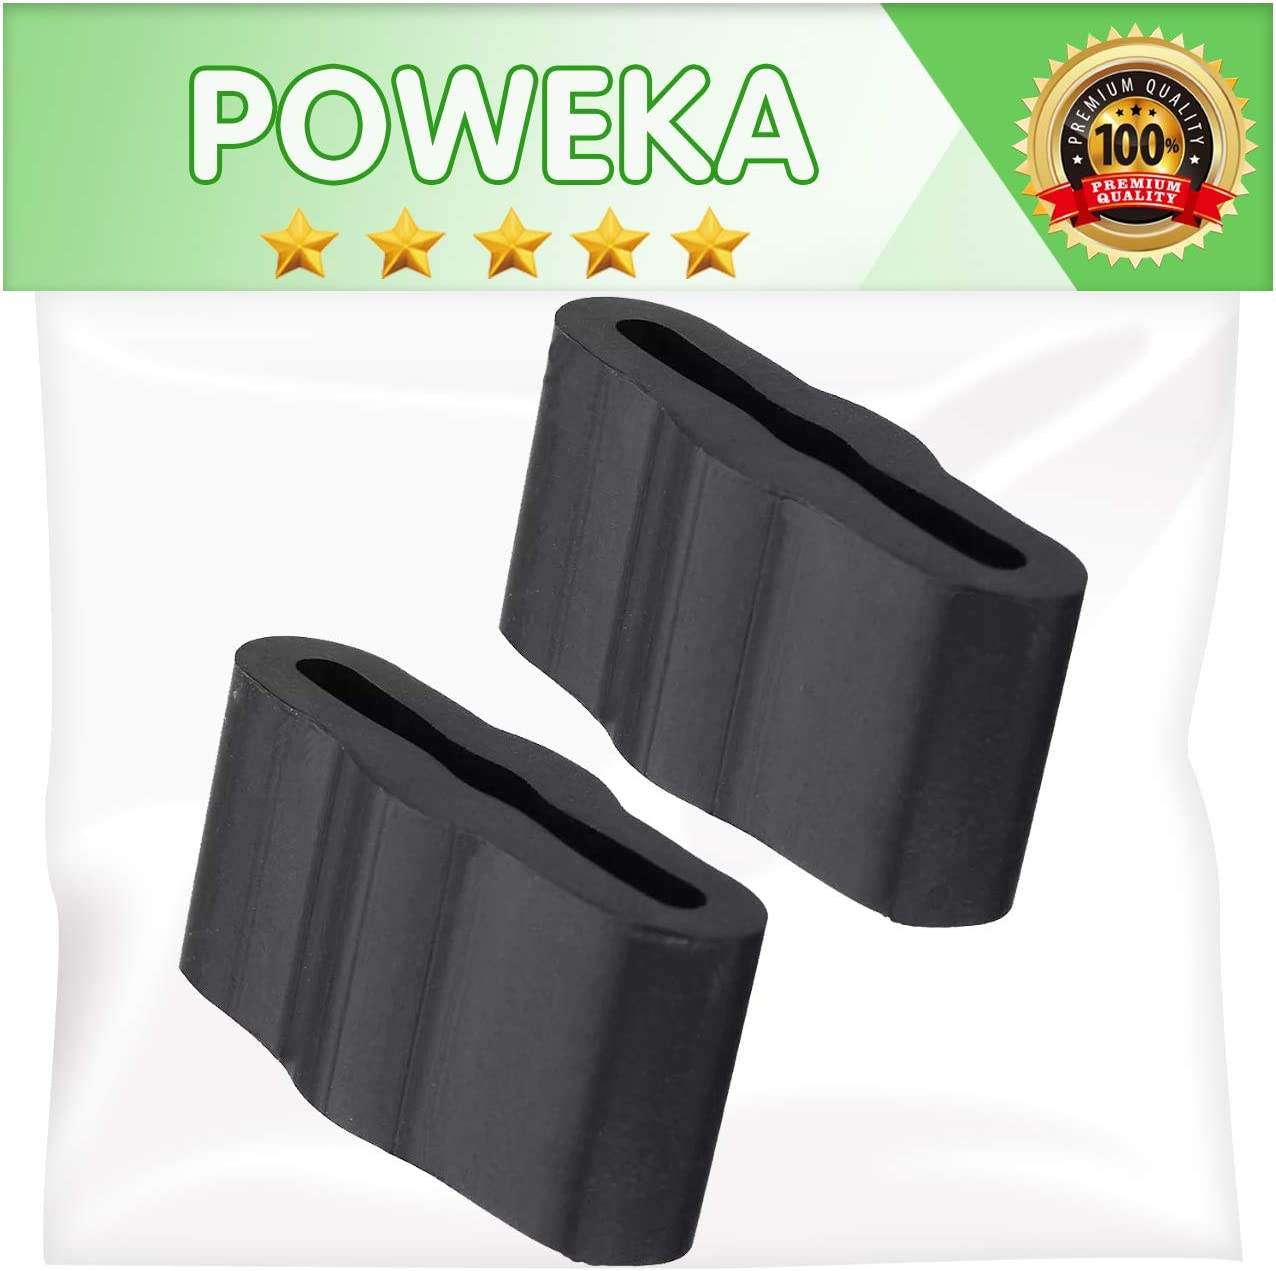 Poweka 8268961 Friction Pad Replacement Compatible with Whirlpool Kenmore Dishwasher, Replaces WP8268961 PS731965 Pack of 2